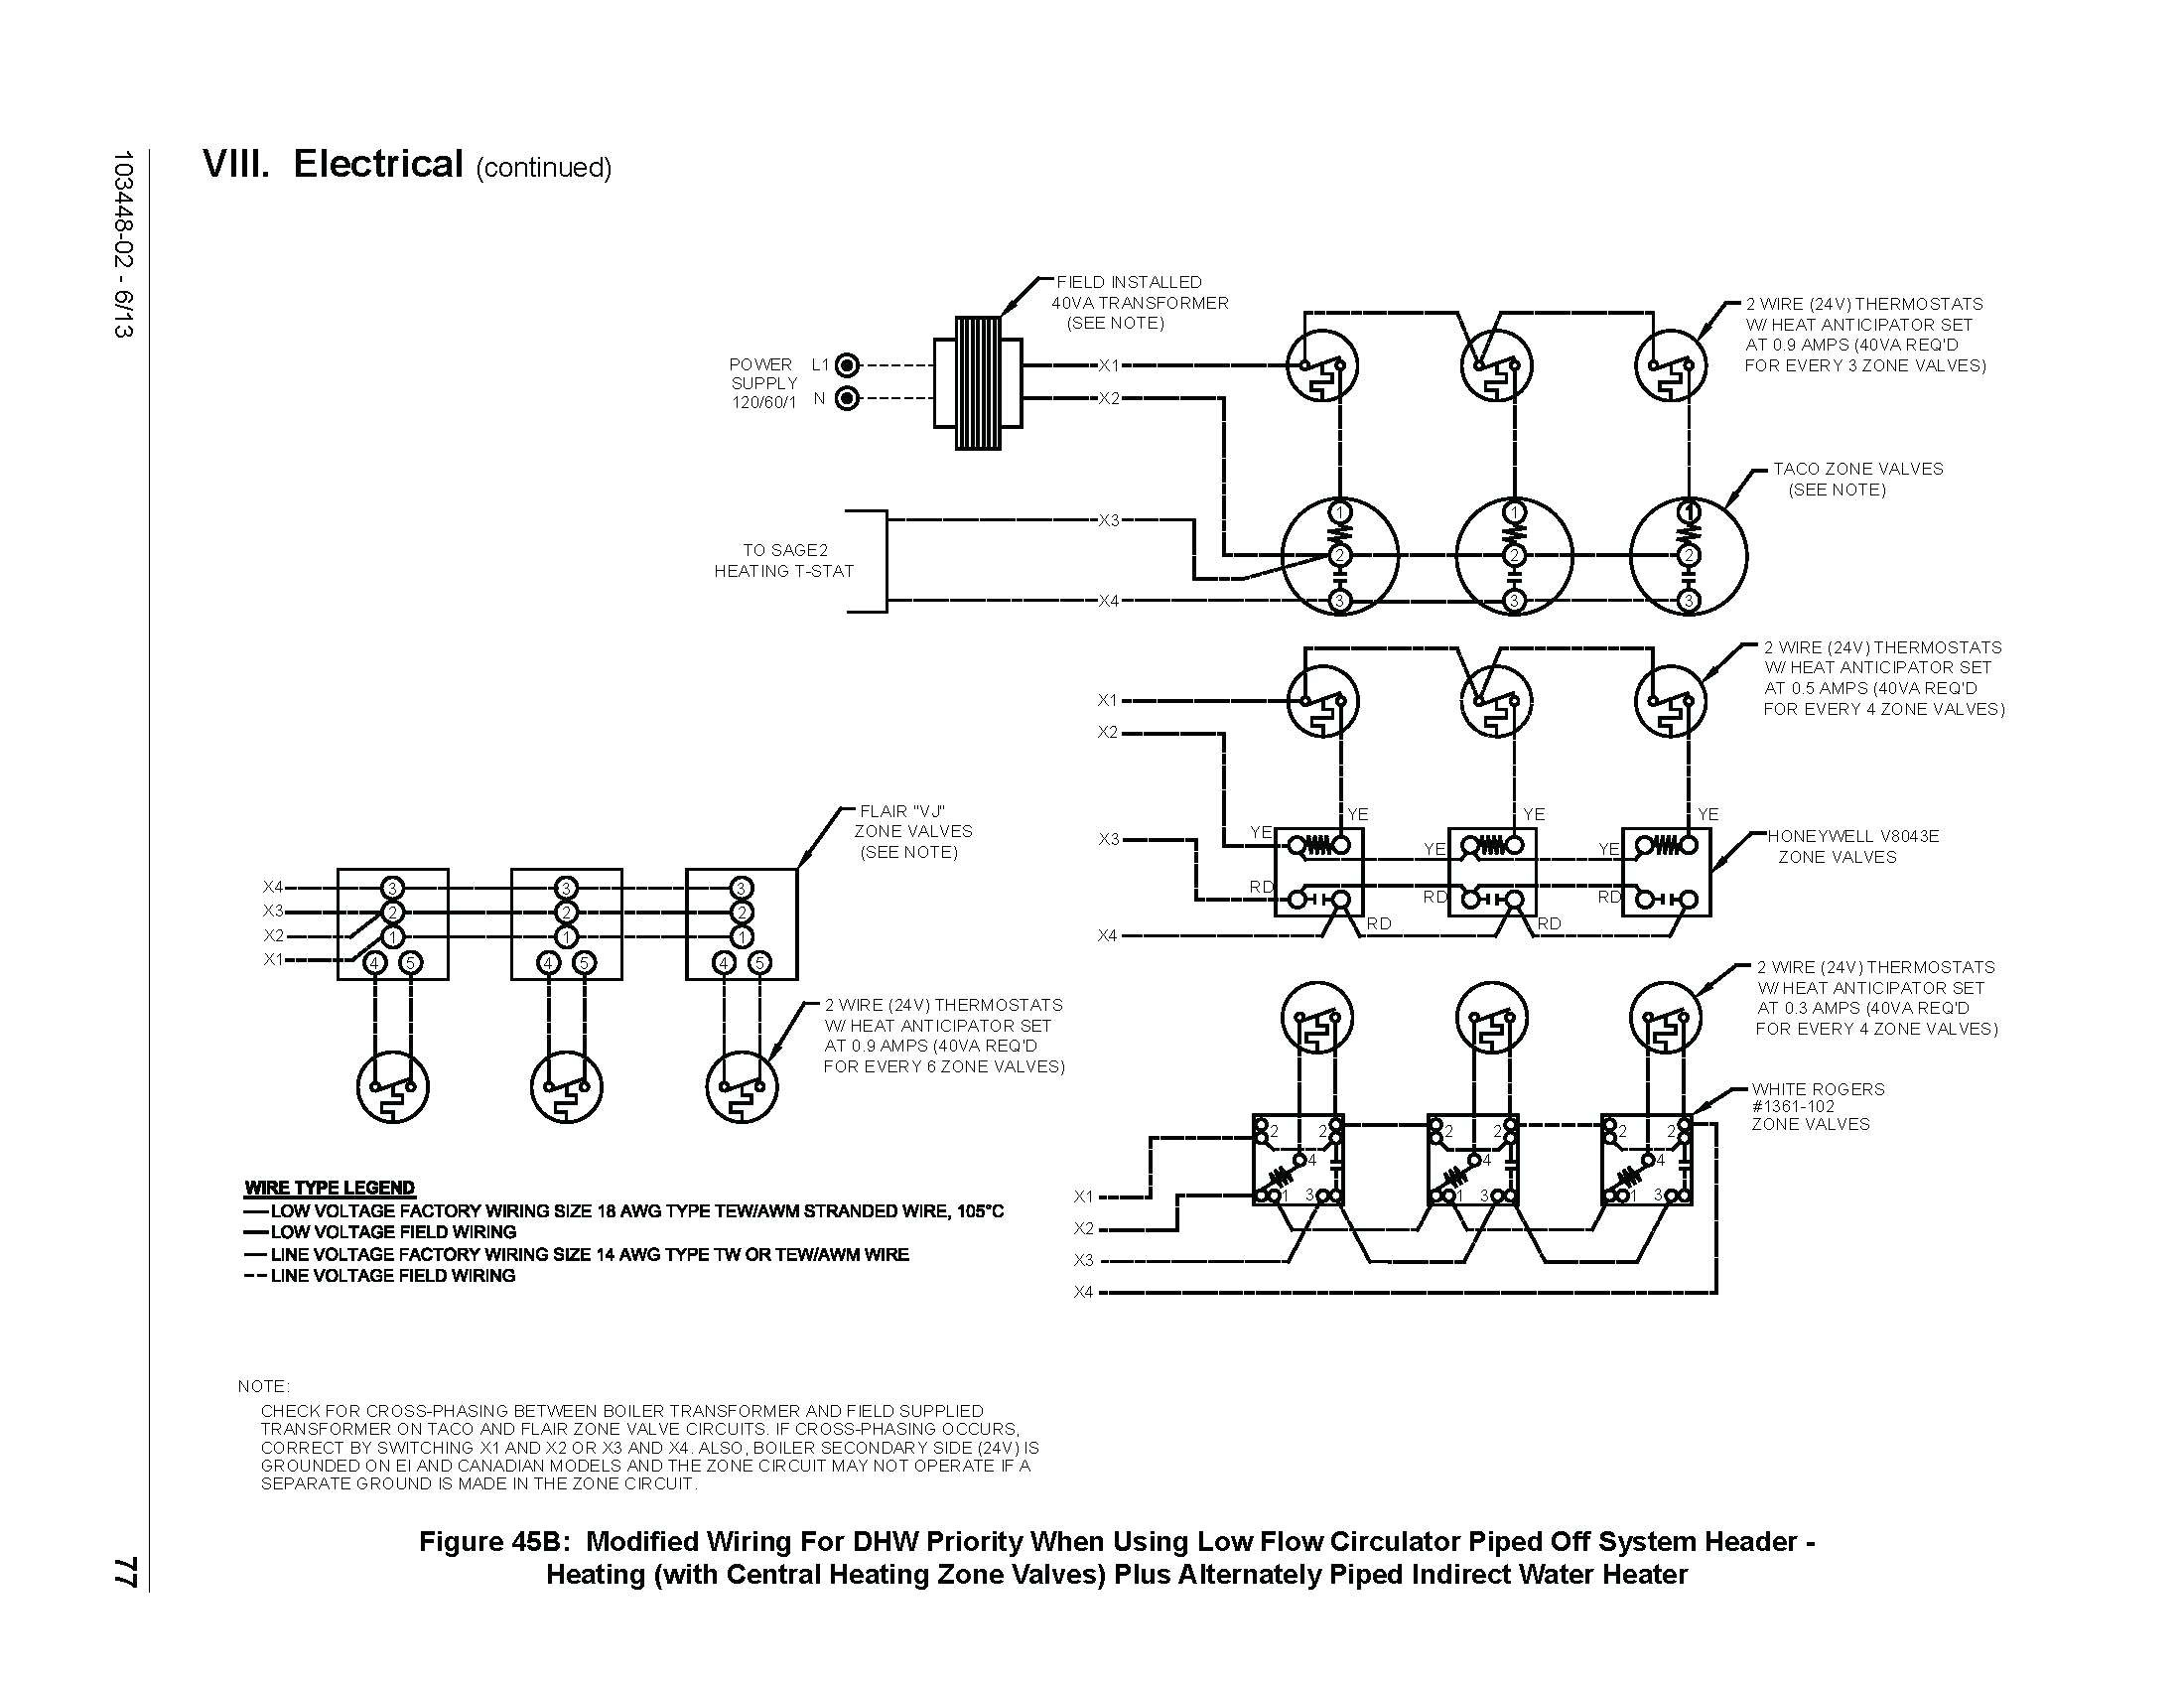 5915a White Rodgers Zone Valve Wiring Diagram Wiring Diagram Image Wiring Library